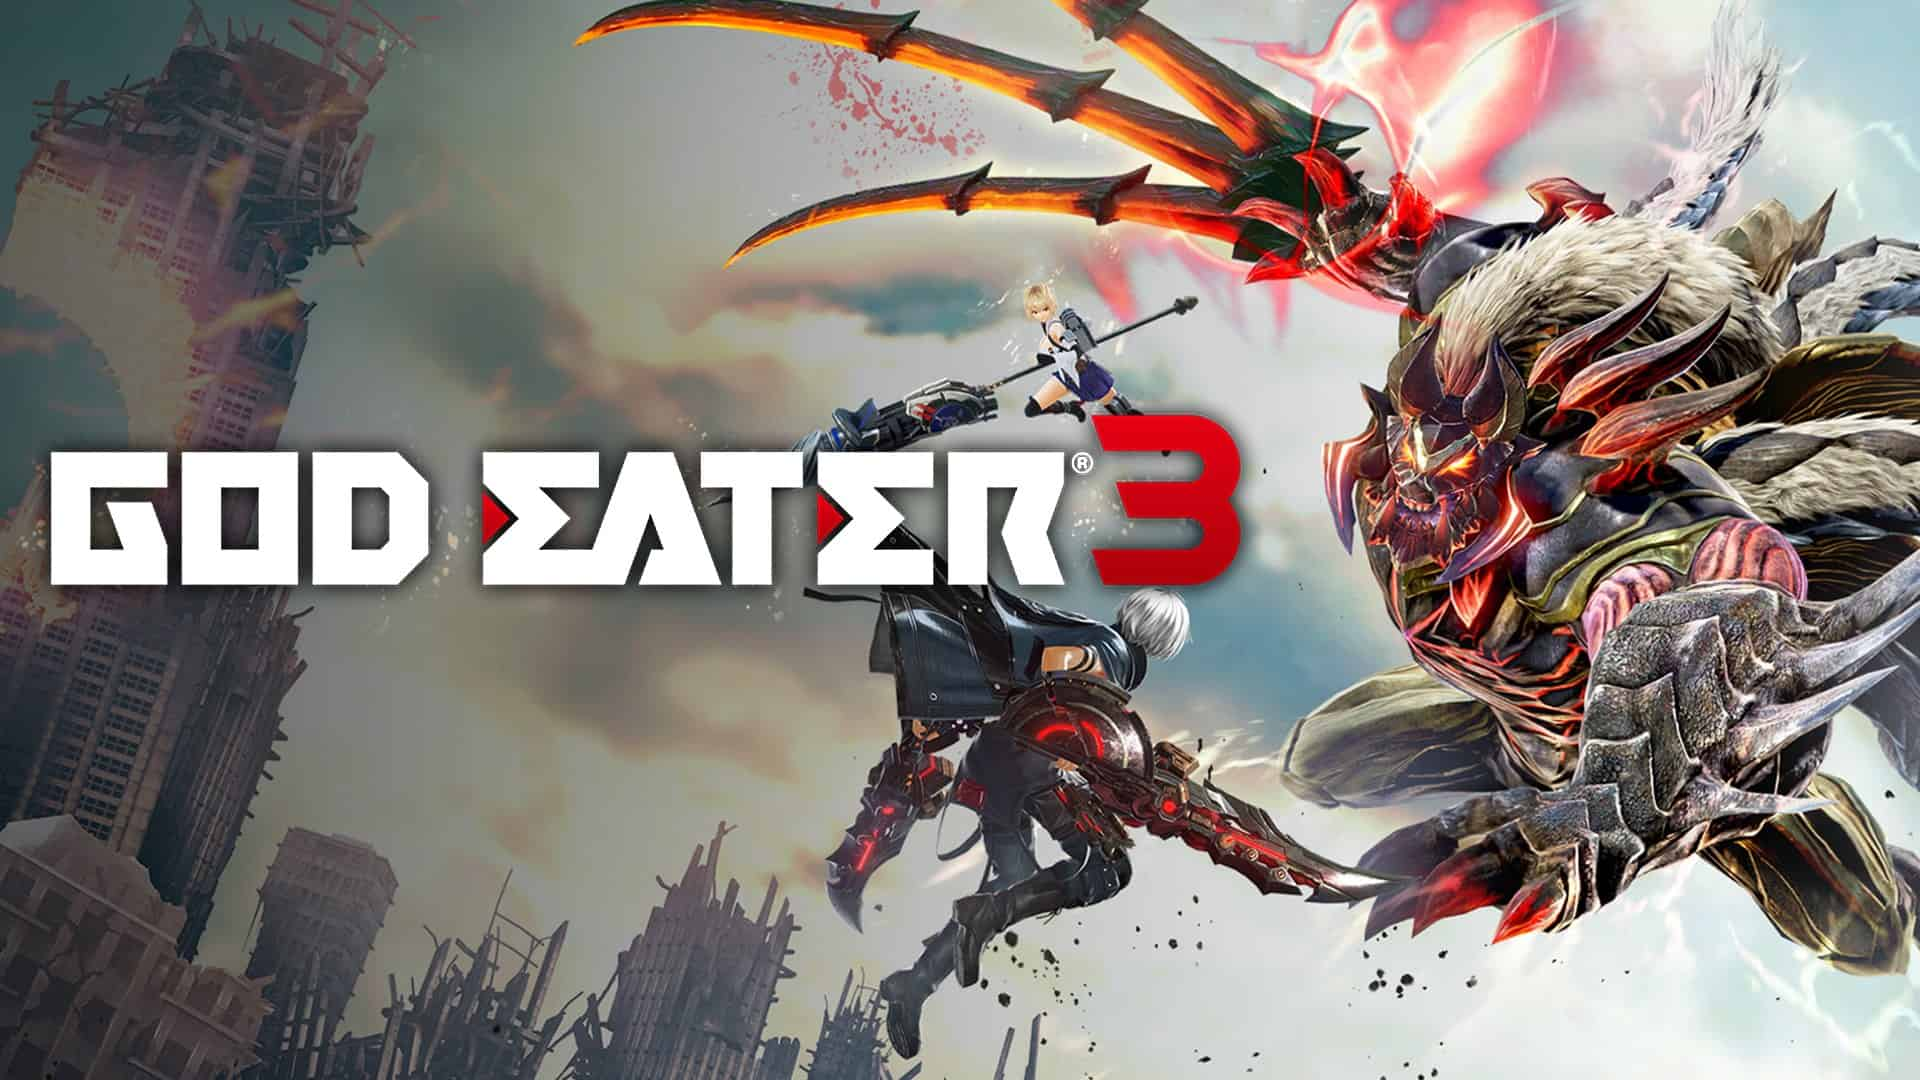 TRAILER: God Eater 3 Coming To Nintendo Switch On July 12th 2019